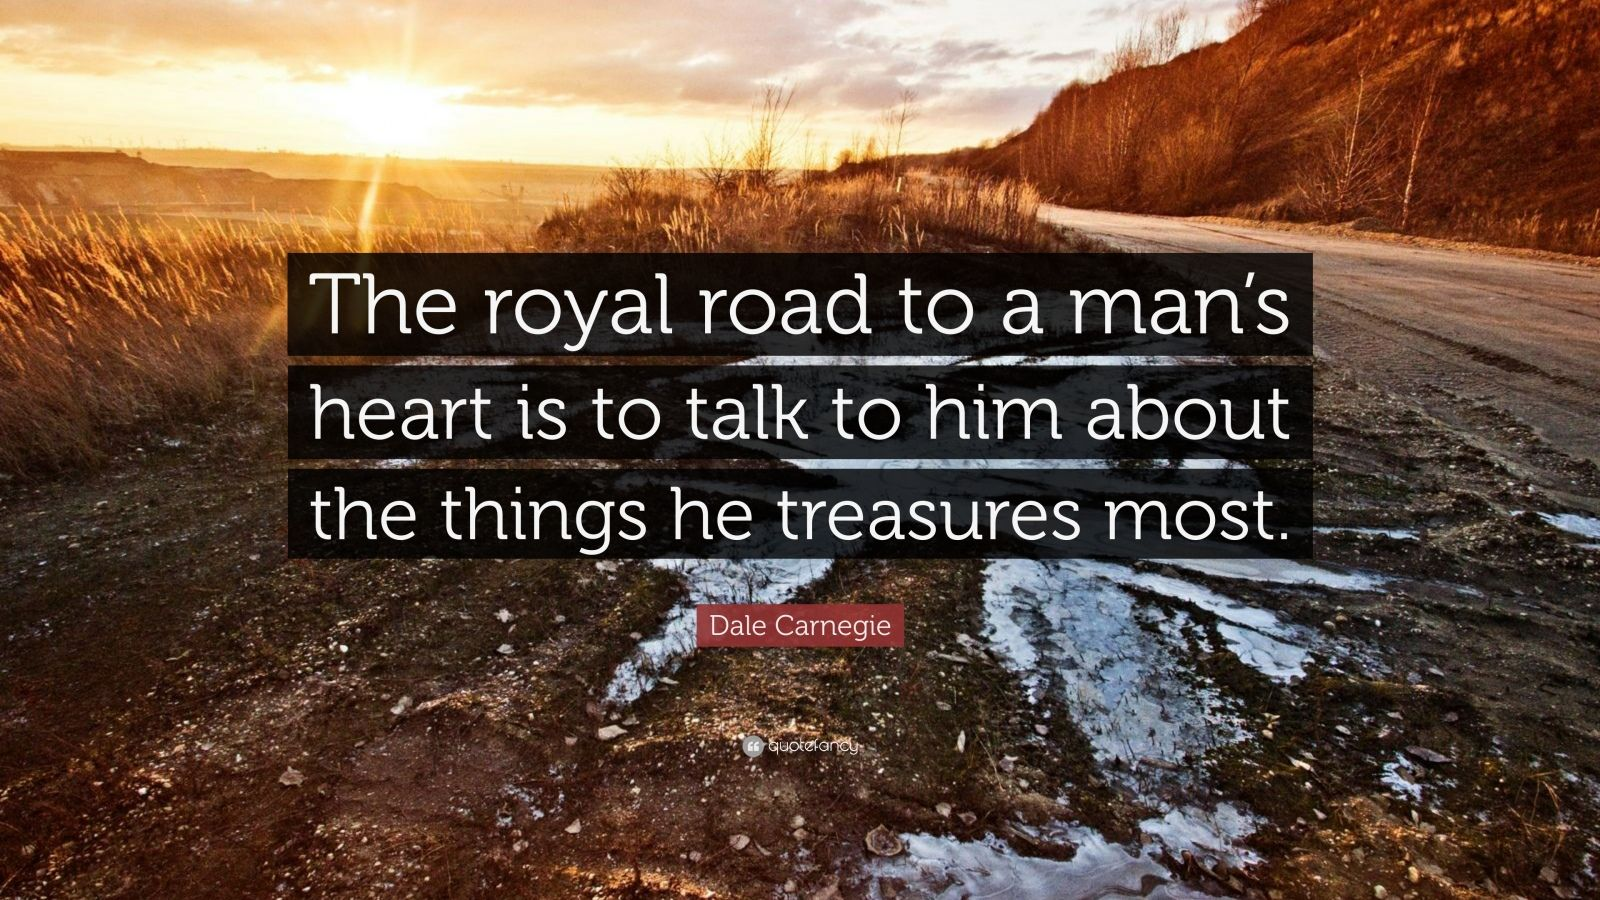 """Dale Carnegie Quote: """"The royal road to a man's heart is to talk to him about the things he treasures most."""""""